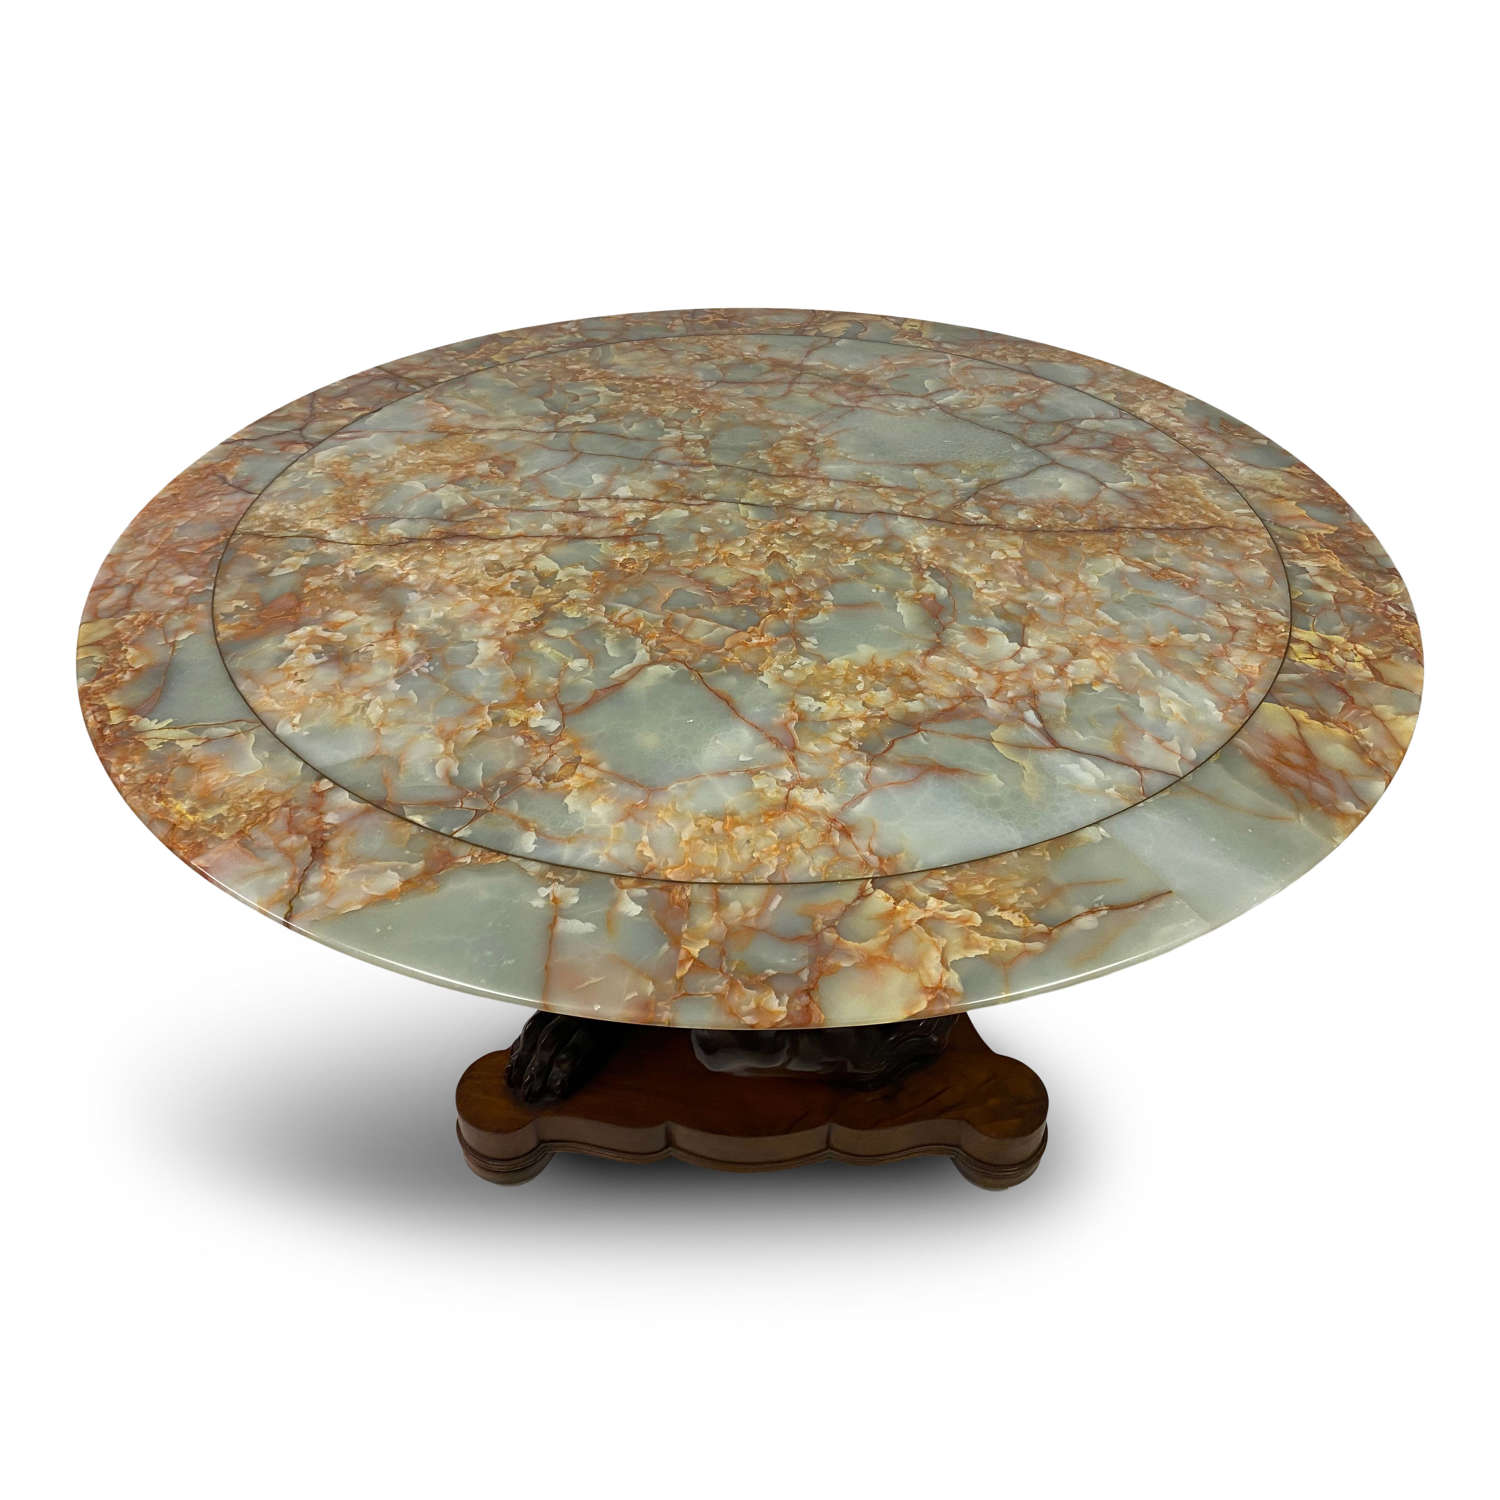 Early 20th Century Centre Table with Distinctive Onyx Top